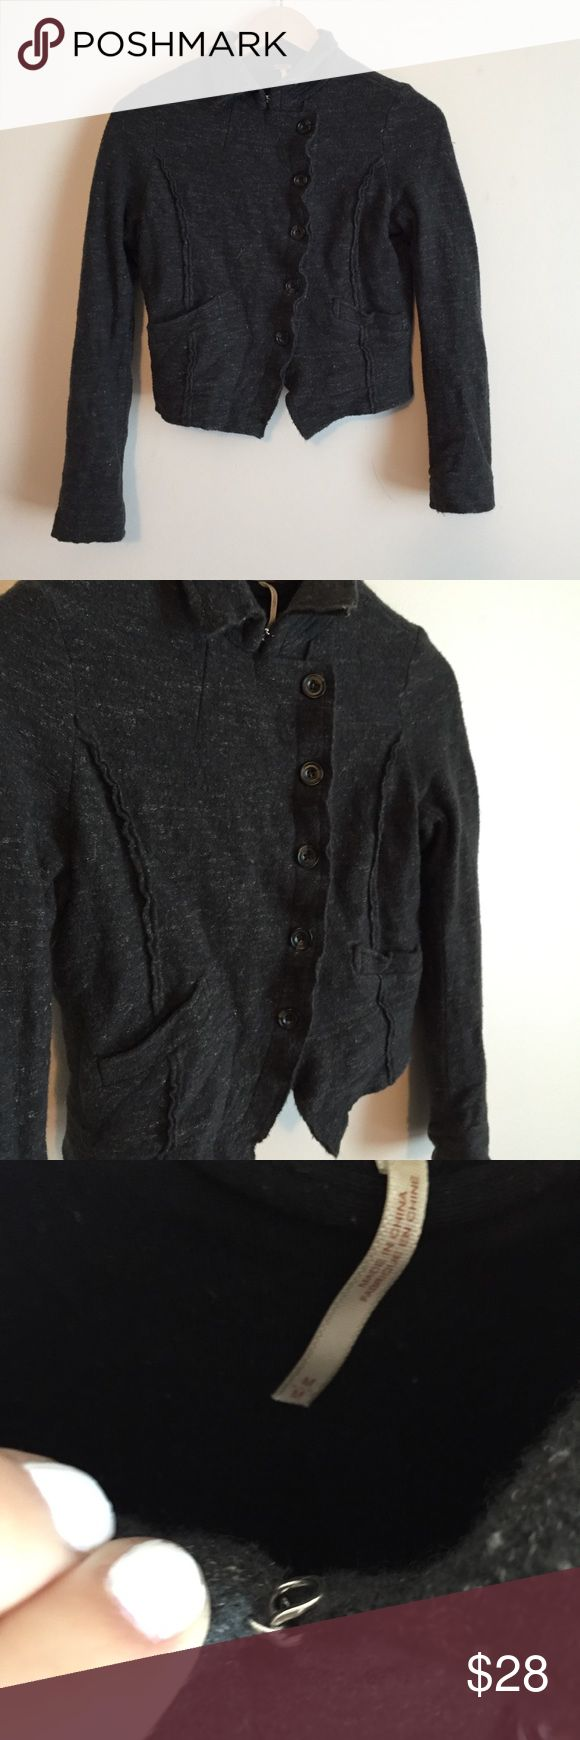 """Free People Wool button Jacket size medium! Gray women's wool jacket from Free People. 6 buttons. Metal clasp at top. Collared. 2 pockets. Black inner lining. 90% wool, 10% linen. This jacket is a bit cropped measuring about 20"""" from top to bottom. Inner lining shows a bit of piling from wear but overall this jacket is in good used condition. Price is so low because I am moving and trying to sell everything! Bundle and save✨✨✨ Free People Jackets & Coats"""